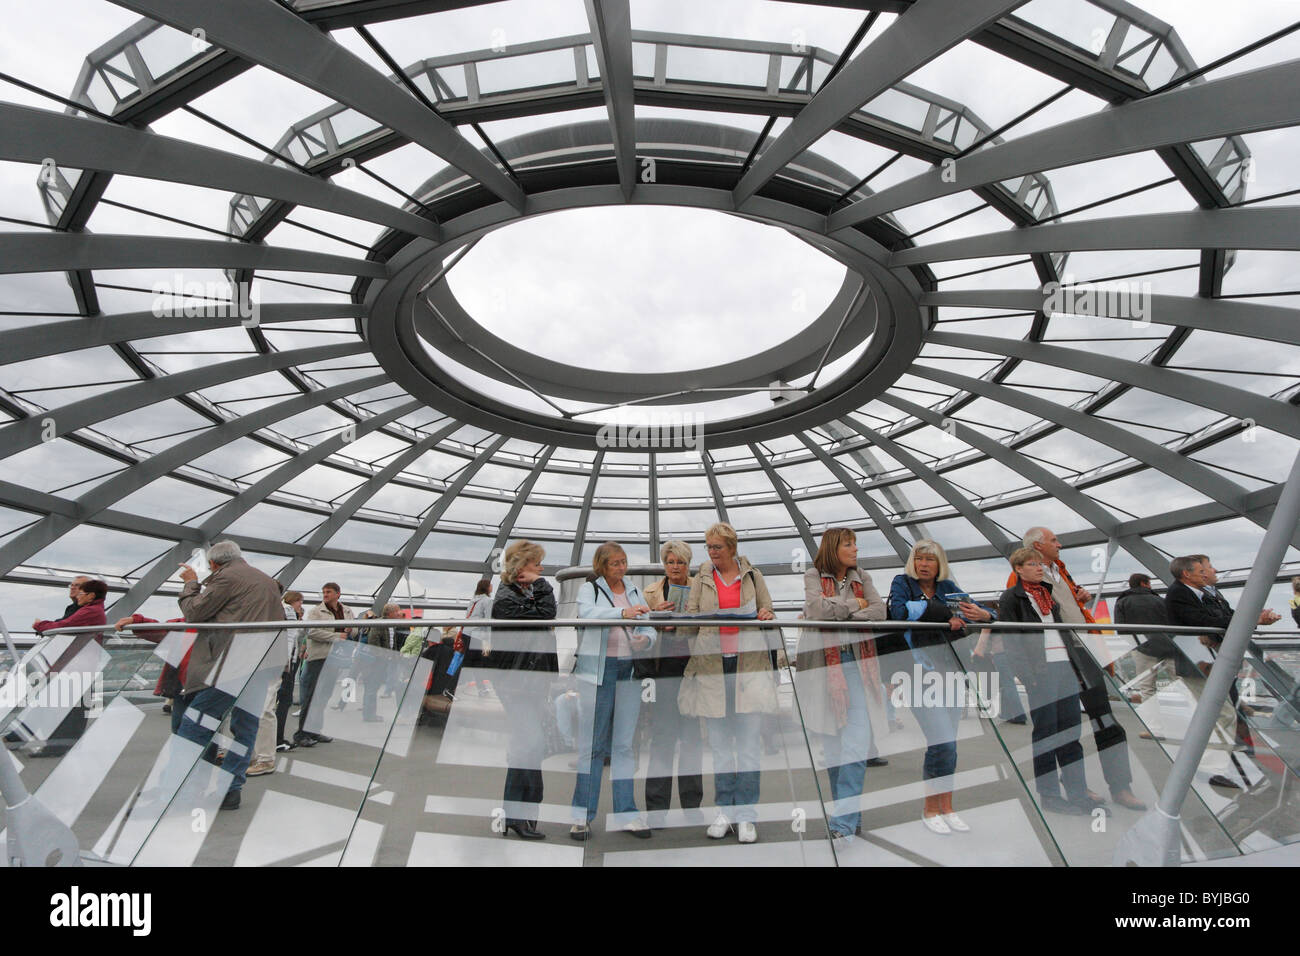 Visitors in the dome of the Reichstag, Berlin, Germany - Stock Image